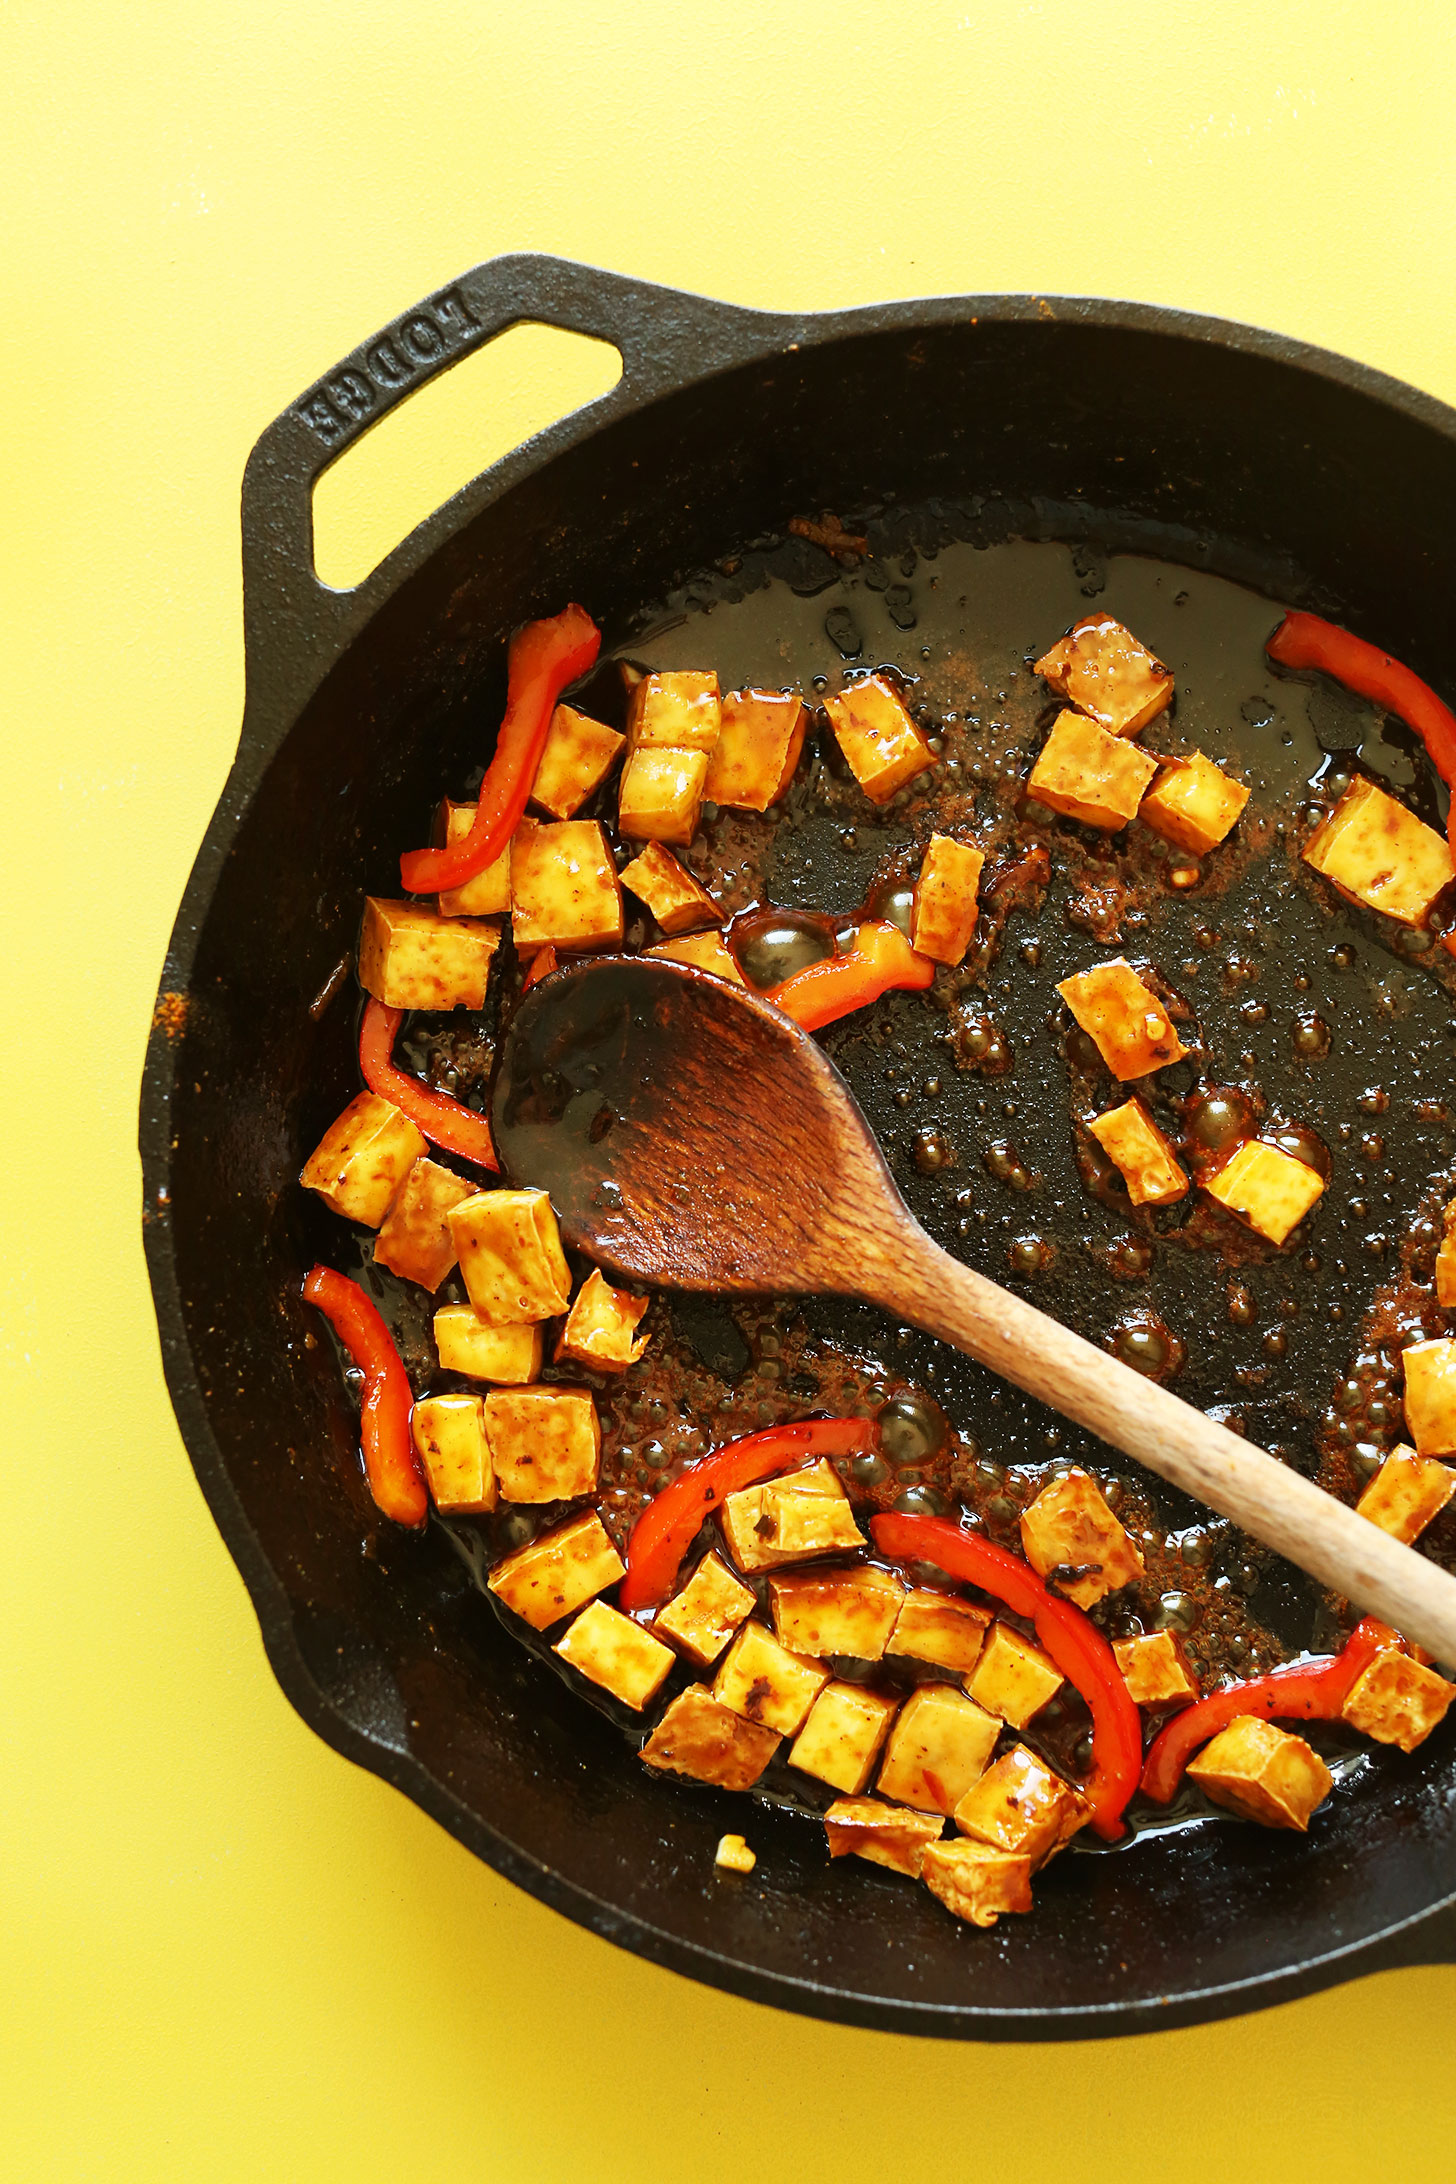 Cooking crispy tofu to add to our Vegan Singapore Noodles recipe